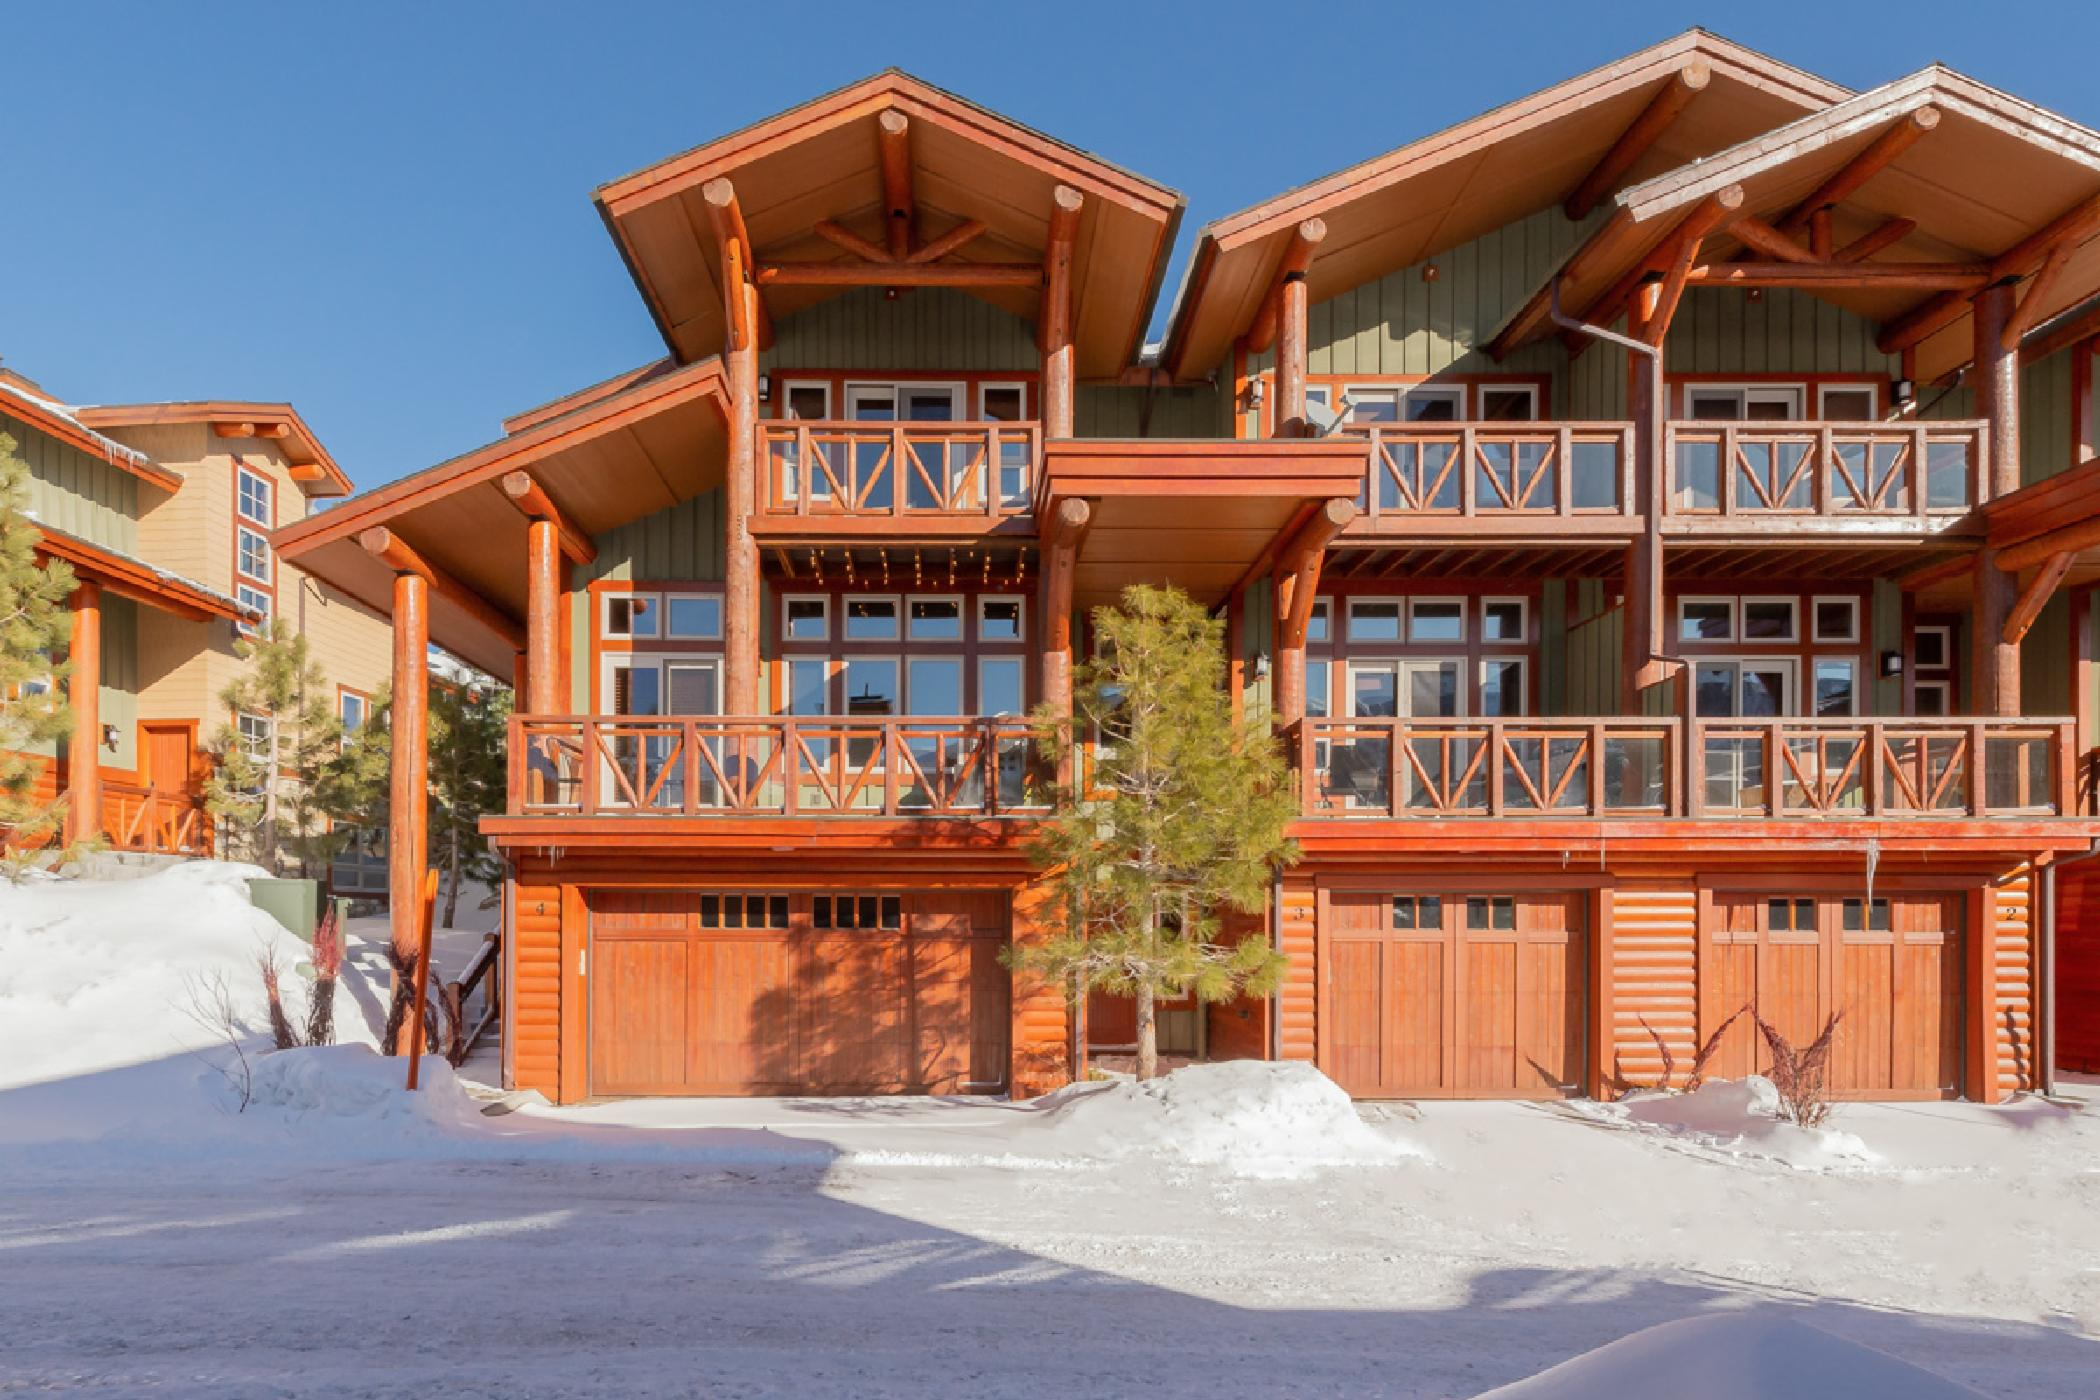 New Listing! Family-Friendly Townhouse Steps from Chairlift with Hot Tub and Mountain Views